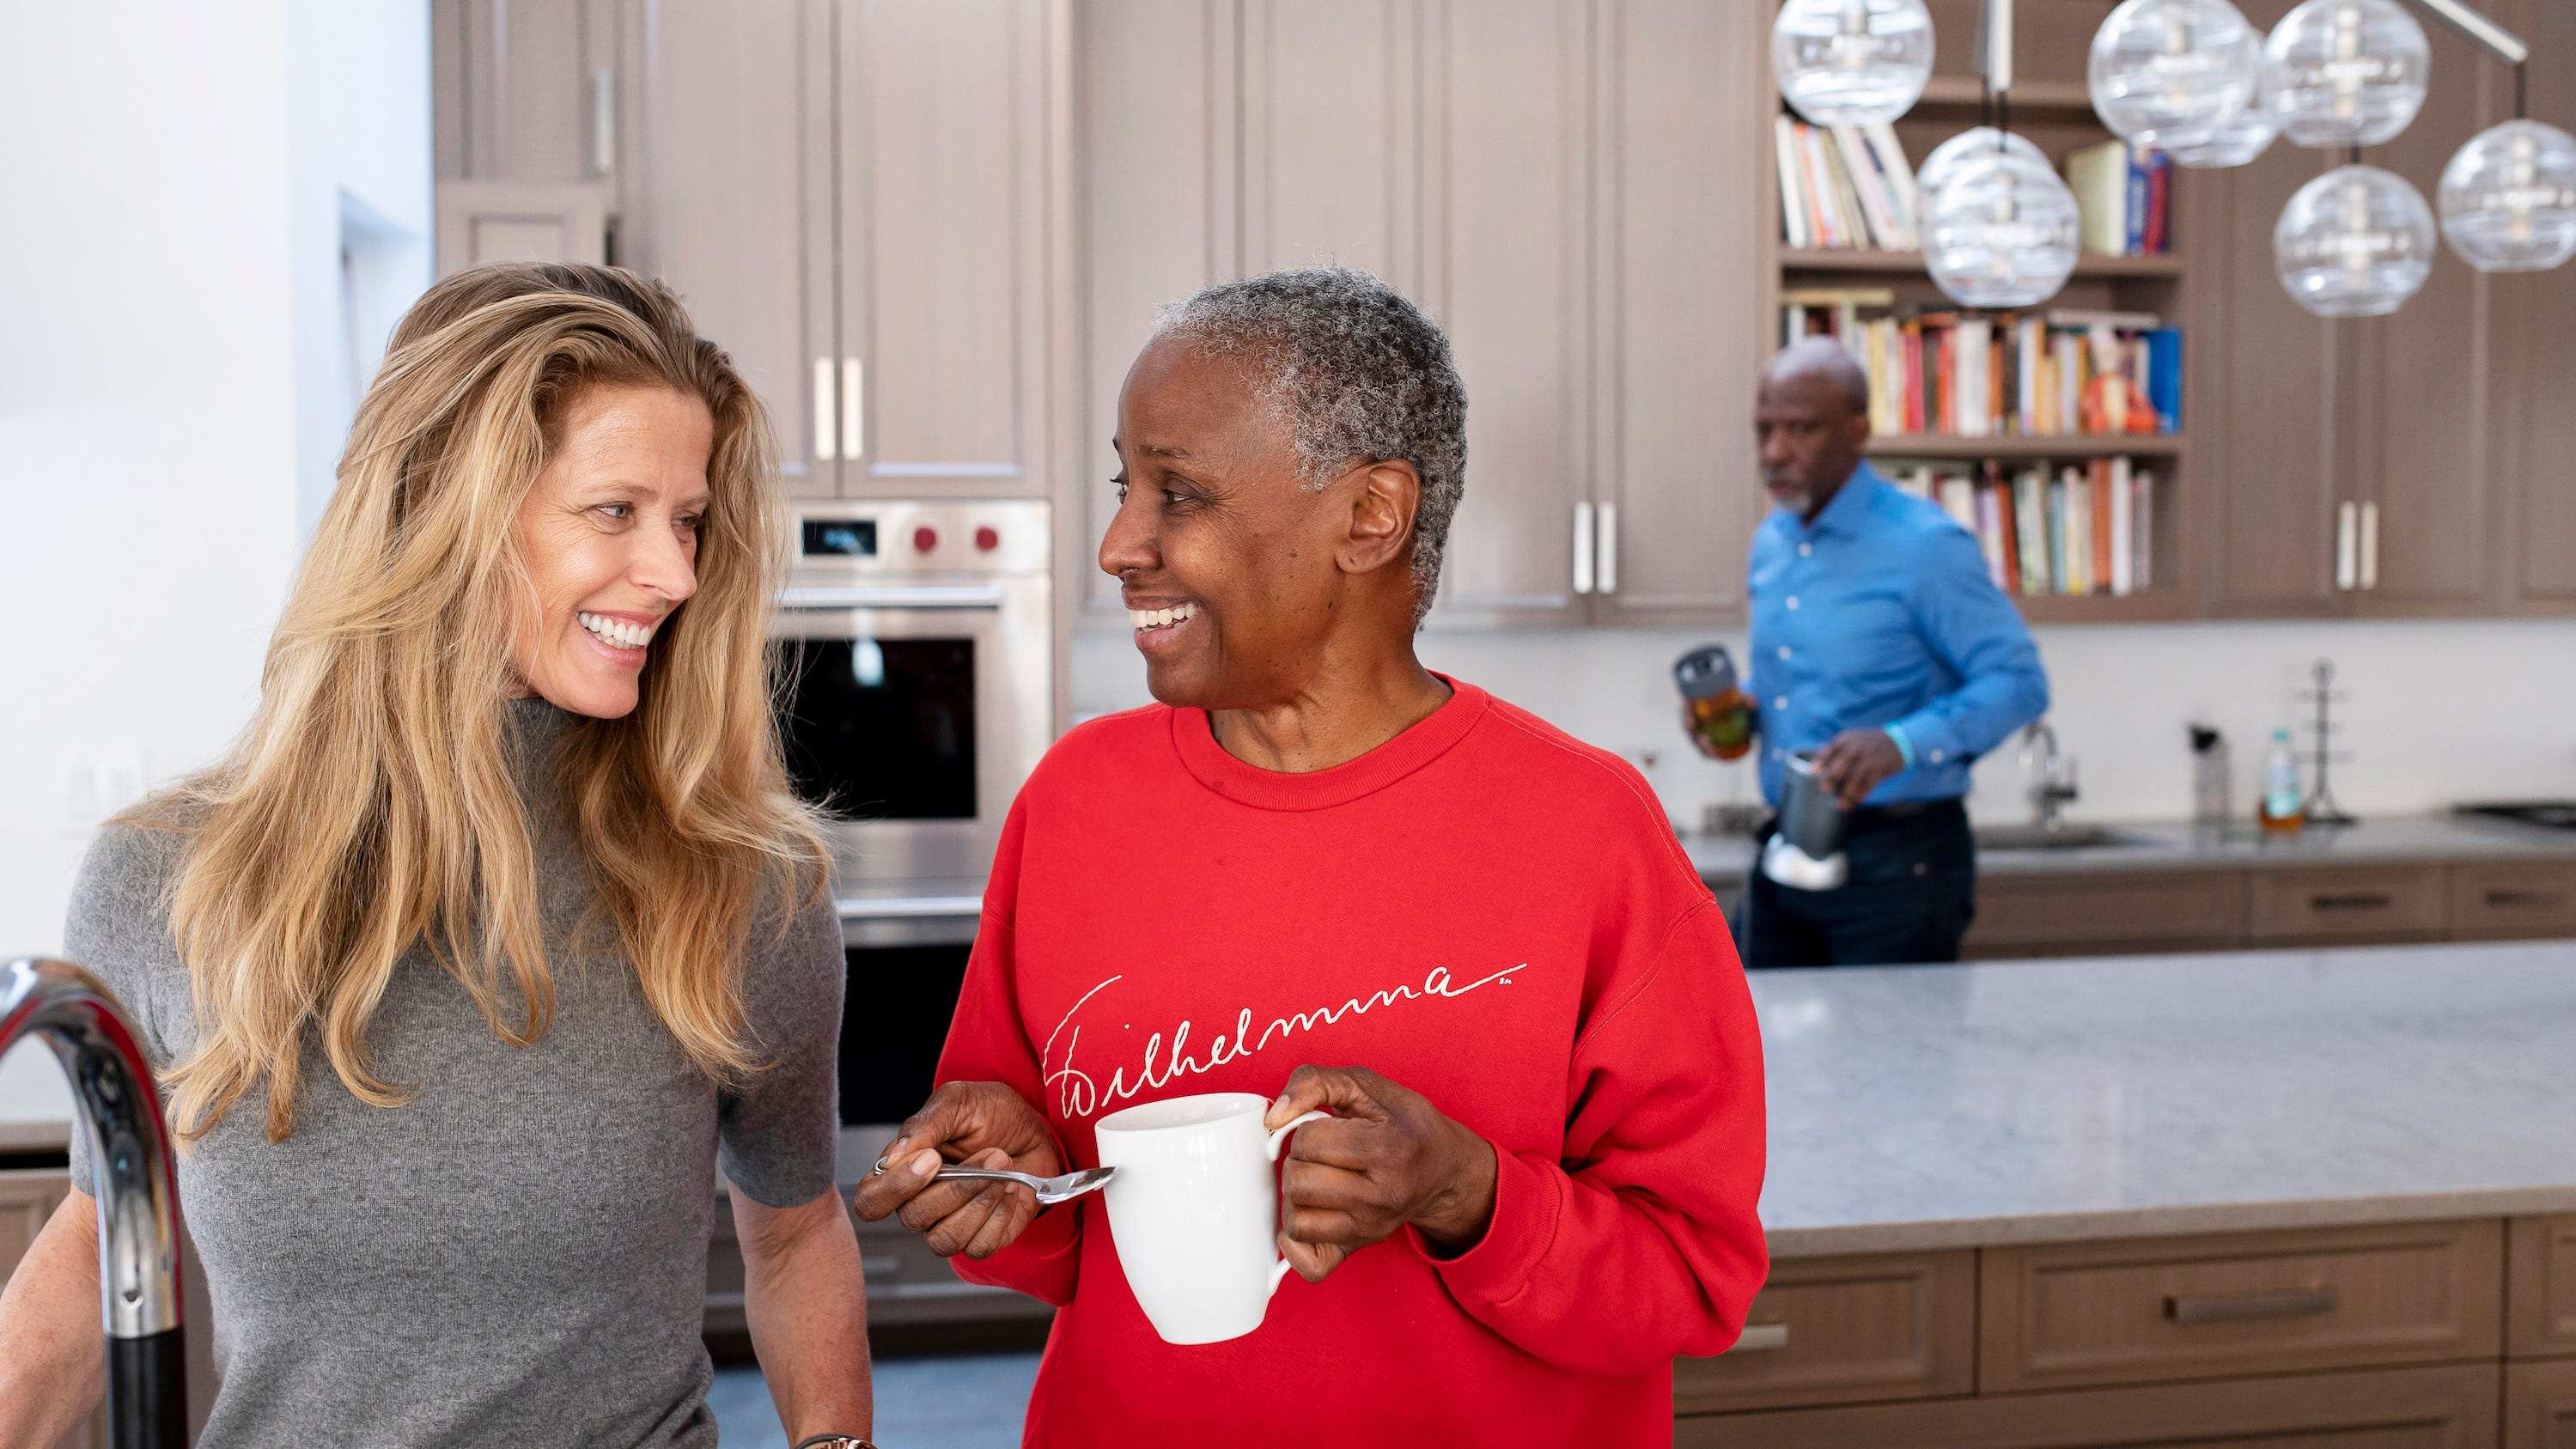 EDITORS NOTE:  THIS IMAGE IS FOR ONE-TIME RIGHTS USAGE IN USATODAY.COM AND USA TODAY ON 1/29/19.  MUST NEGOTIATE THE RATE--RAS.  January 9, 2018 - East Hampton, NY : Alex Lerner, left, and B. Smith share a moment as B. drinks tea in their East Hampton home on Long Island, New York, on Wednesday, Jan. 9, 2019. Early onset Alzheimer's robbed B. Smith – the former model, publisher, and restaurateur – of her career, along with her memory. Today, she is cared for by her daughter, Dana Gasby, husband Dan Gasby, and her husband's girlfriend, Alex Lerner – none of whom she recognizes.